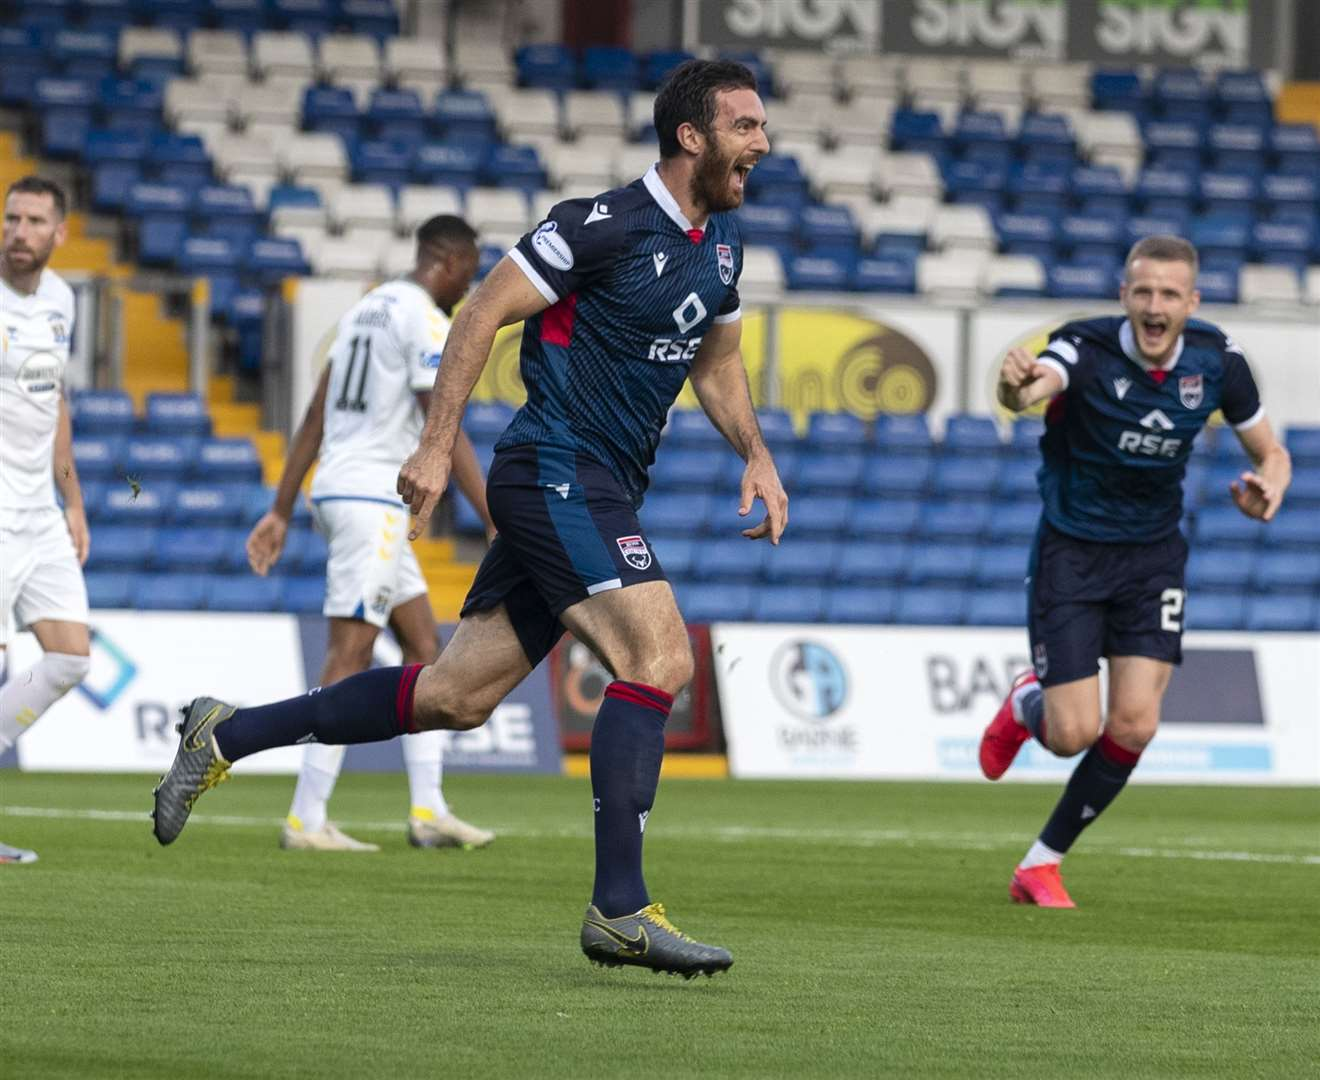 Ross Draper in action for Ross County.  Picture - ken macpherson.